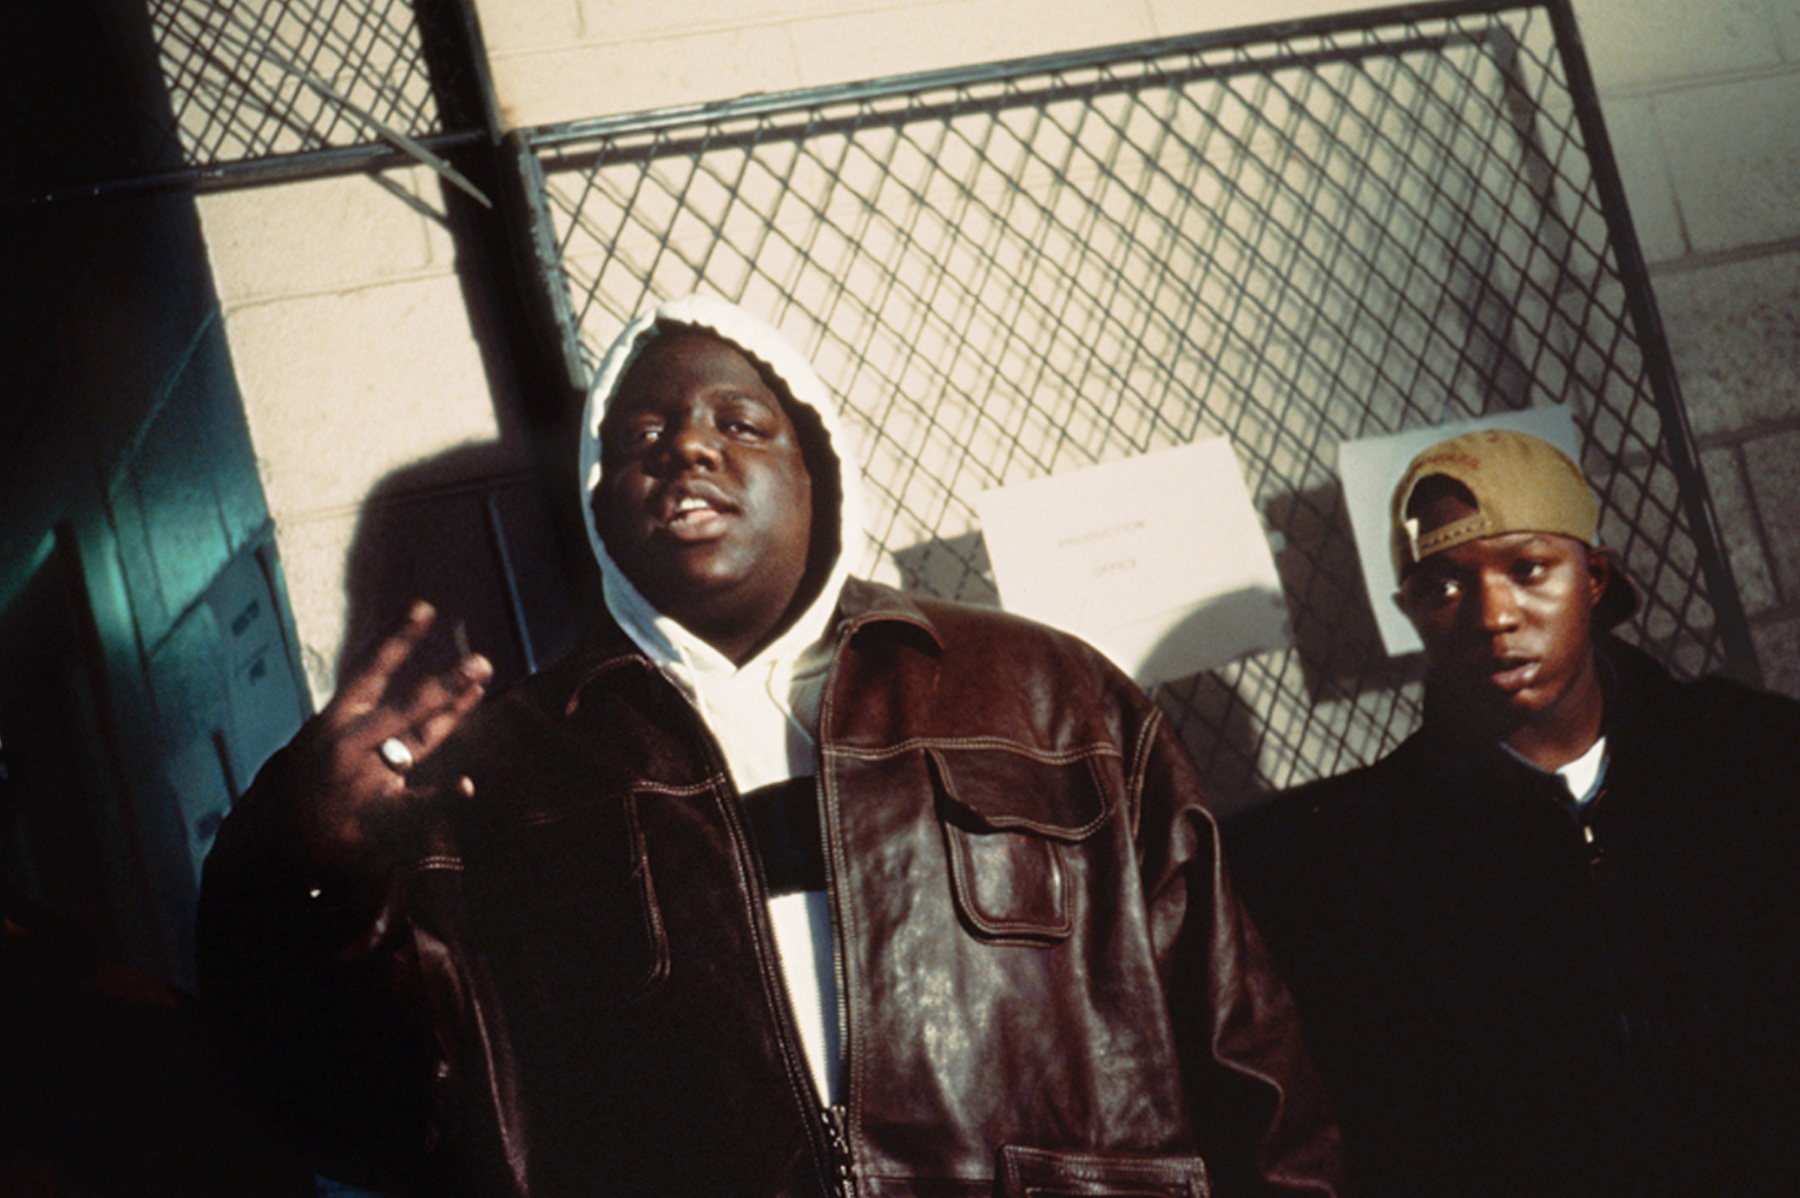 Rarely Seen Images of Biggie, Flash and More from Rap's First 25 Years